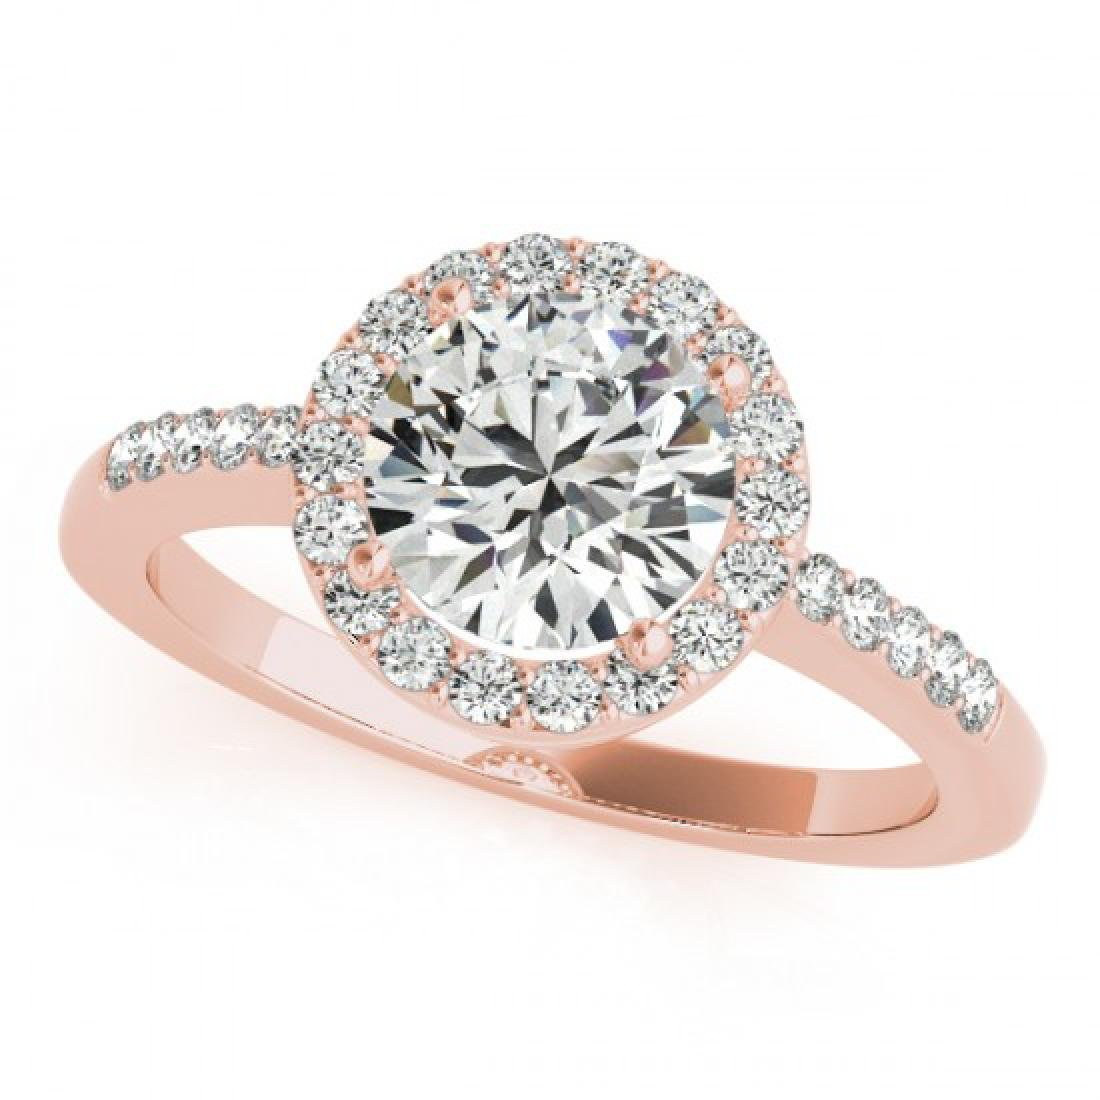 1.01 CTW Certified VS/SI Diamond Solitaire Halo Ring